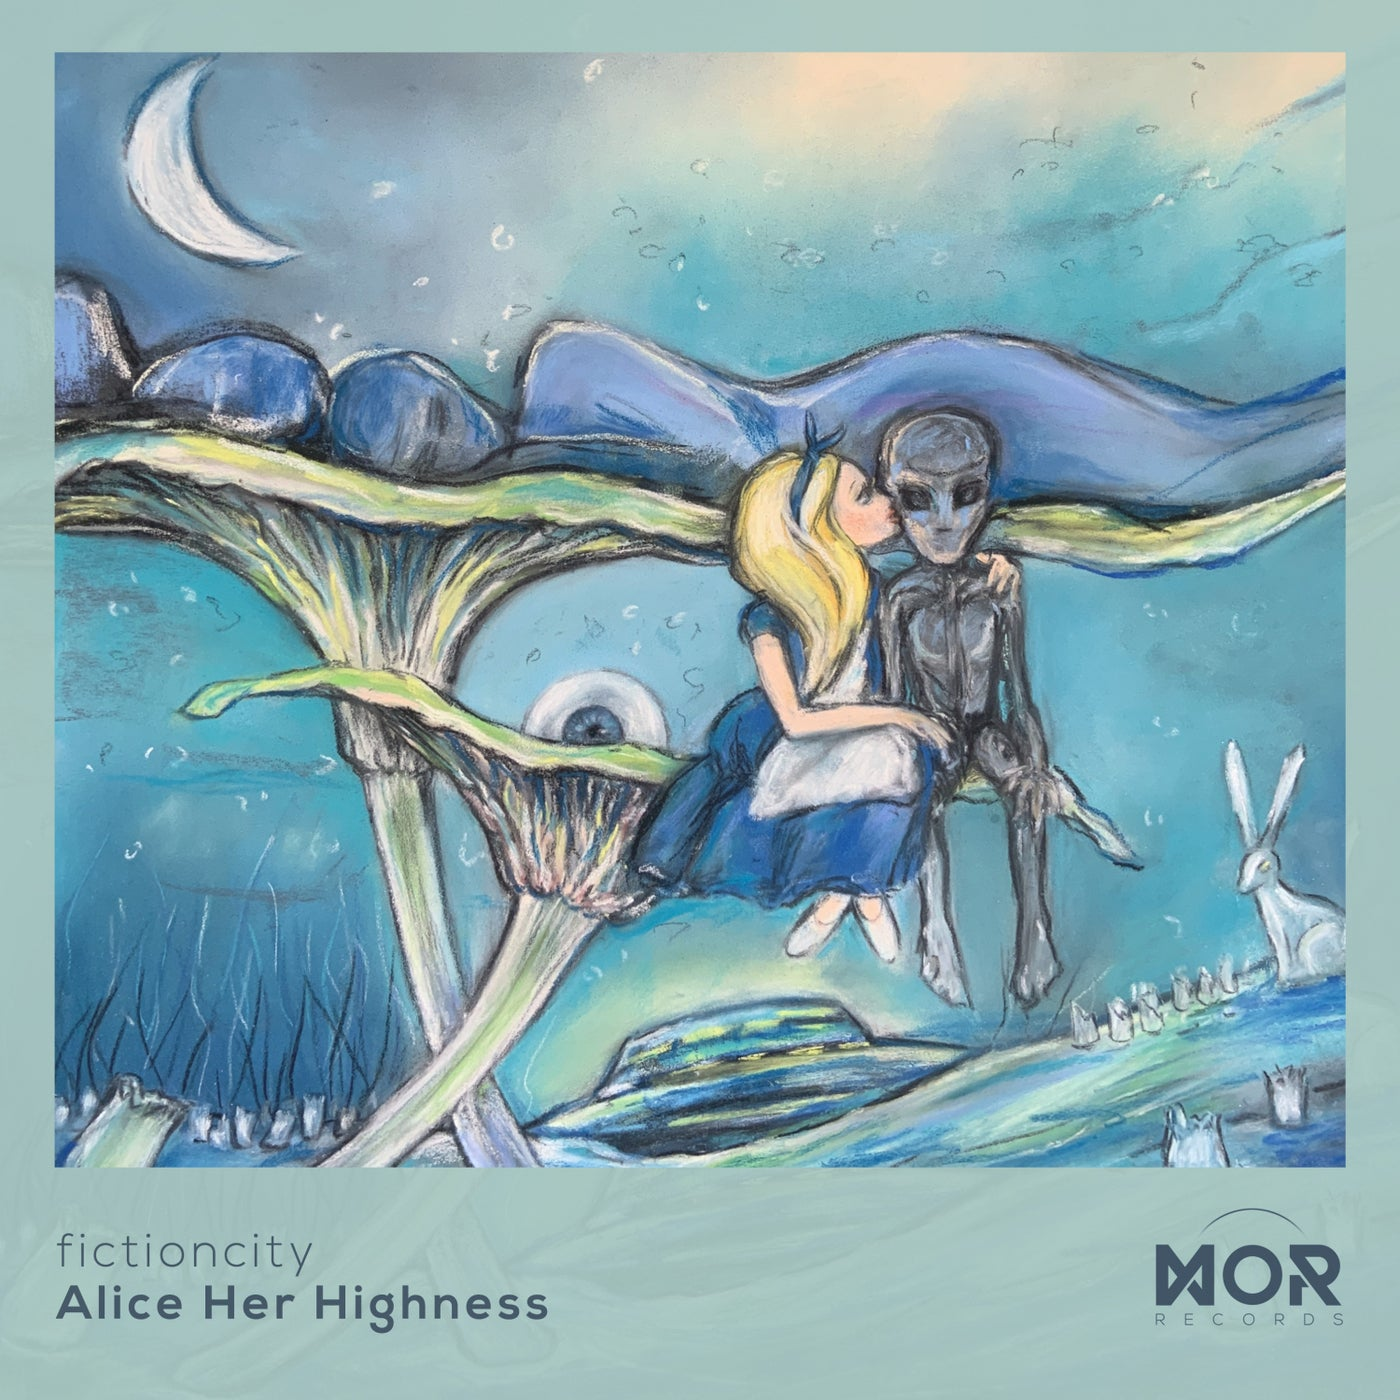 Fictioncity - Alice Her Highness (2021)